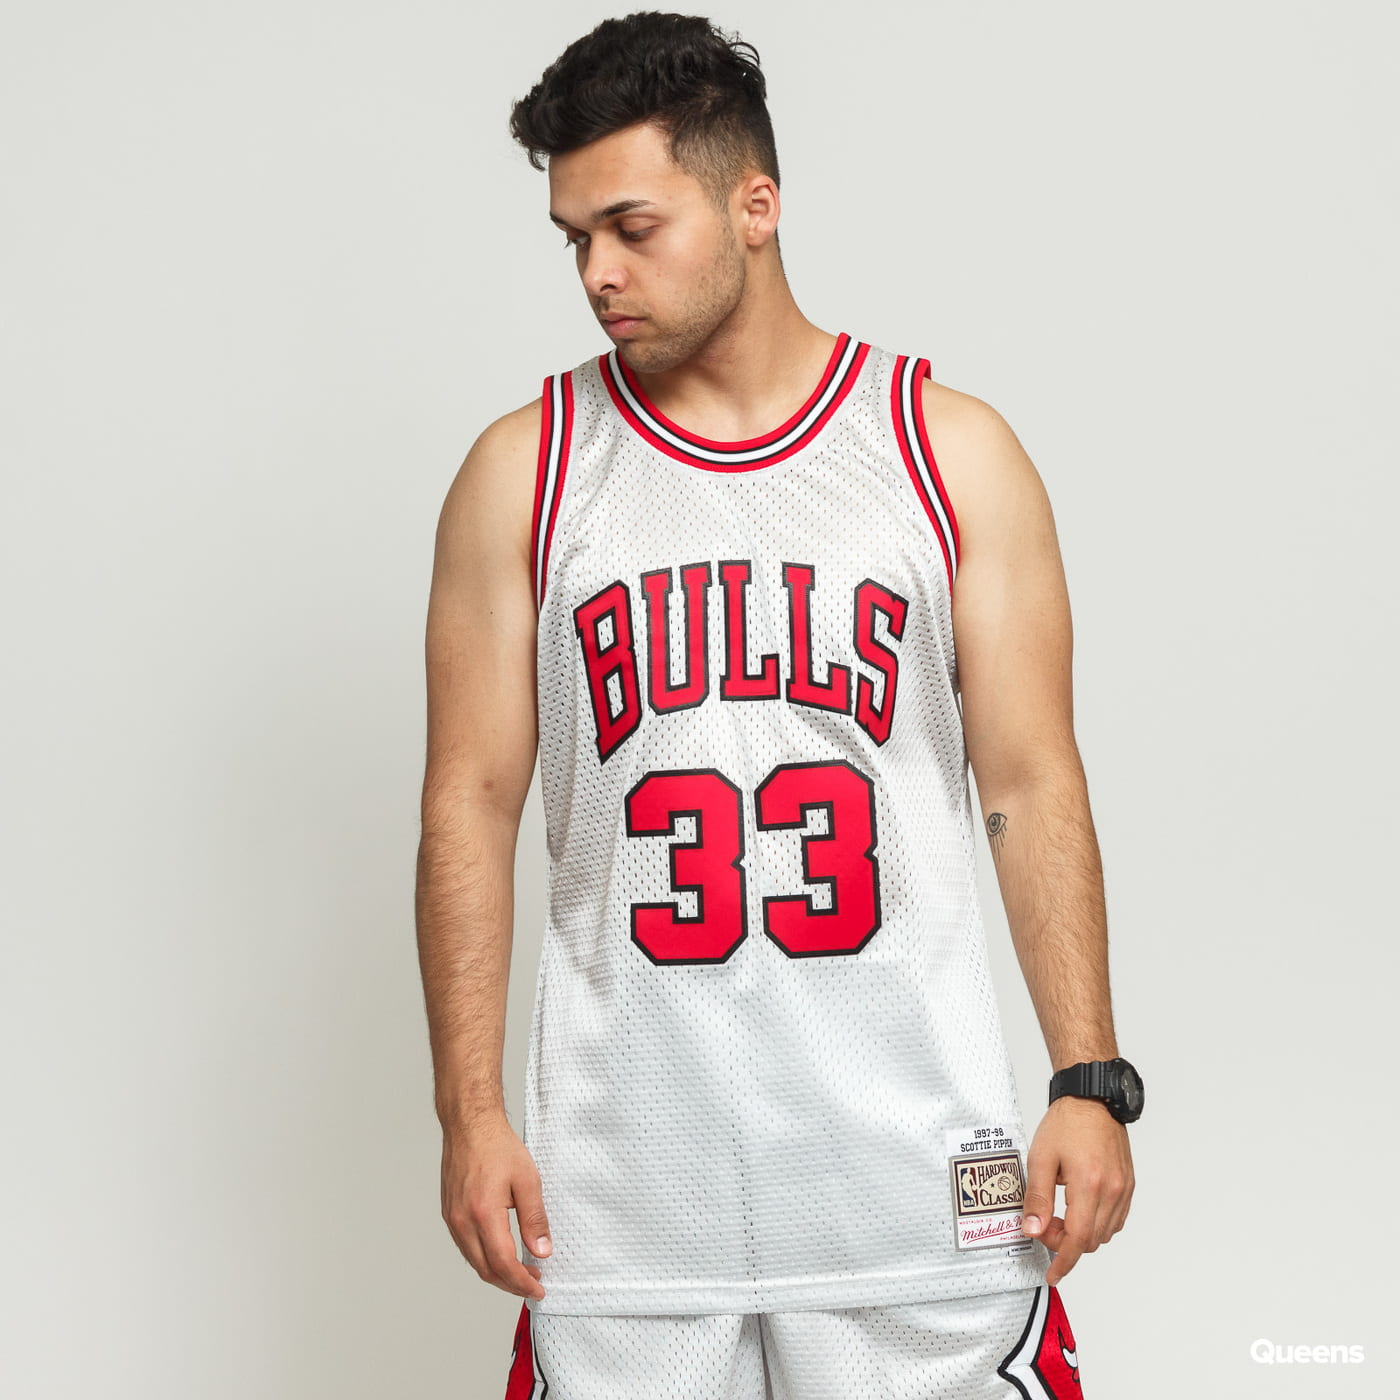 finest selection b4eb2 fd9c9 Mitchell & Ness NBA Swingman Jersey Chicago Bulls - Scottie Pippen #33  silver